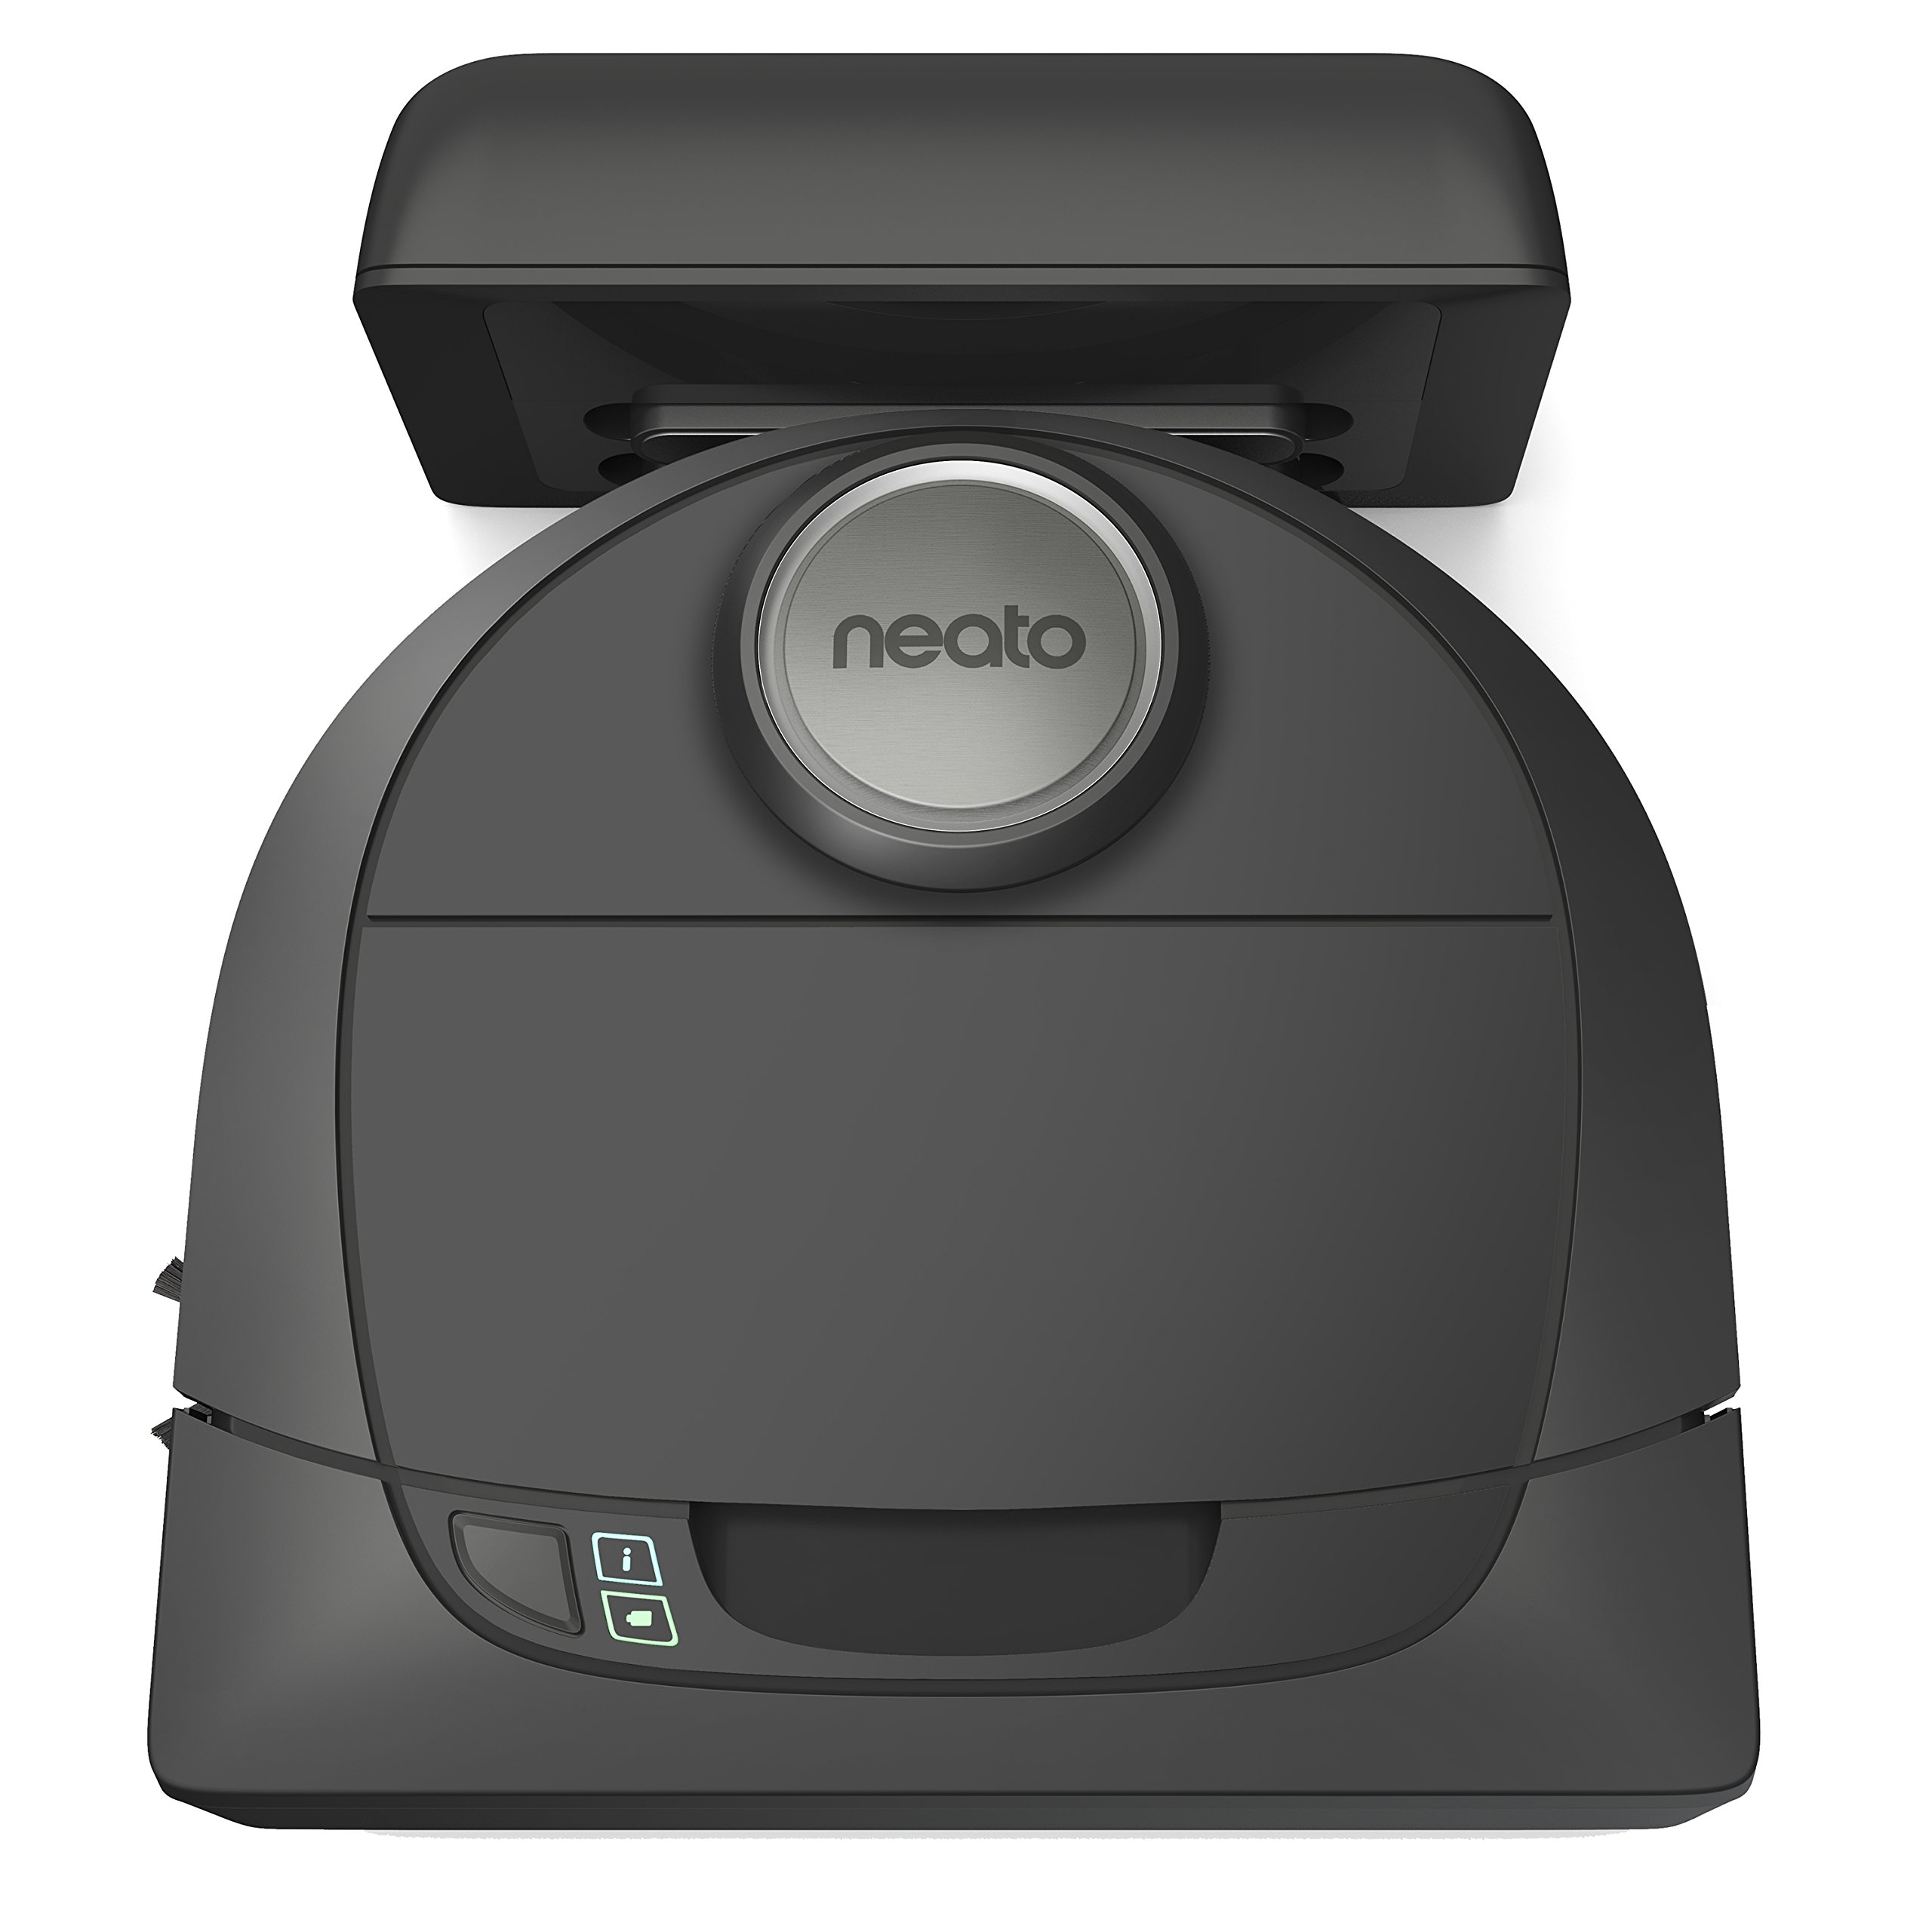 Neato Botvac D5 Connected Navigating Robot Vacuum, Pet & Allergy by Neato Robotics (Image #3)